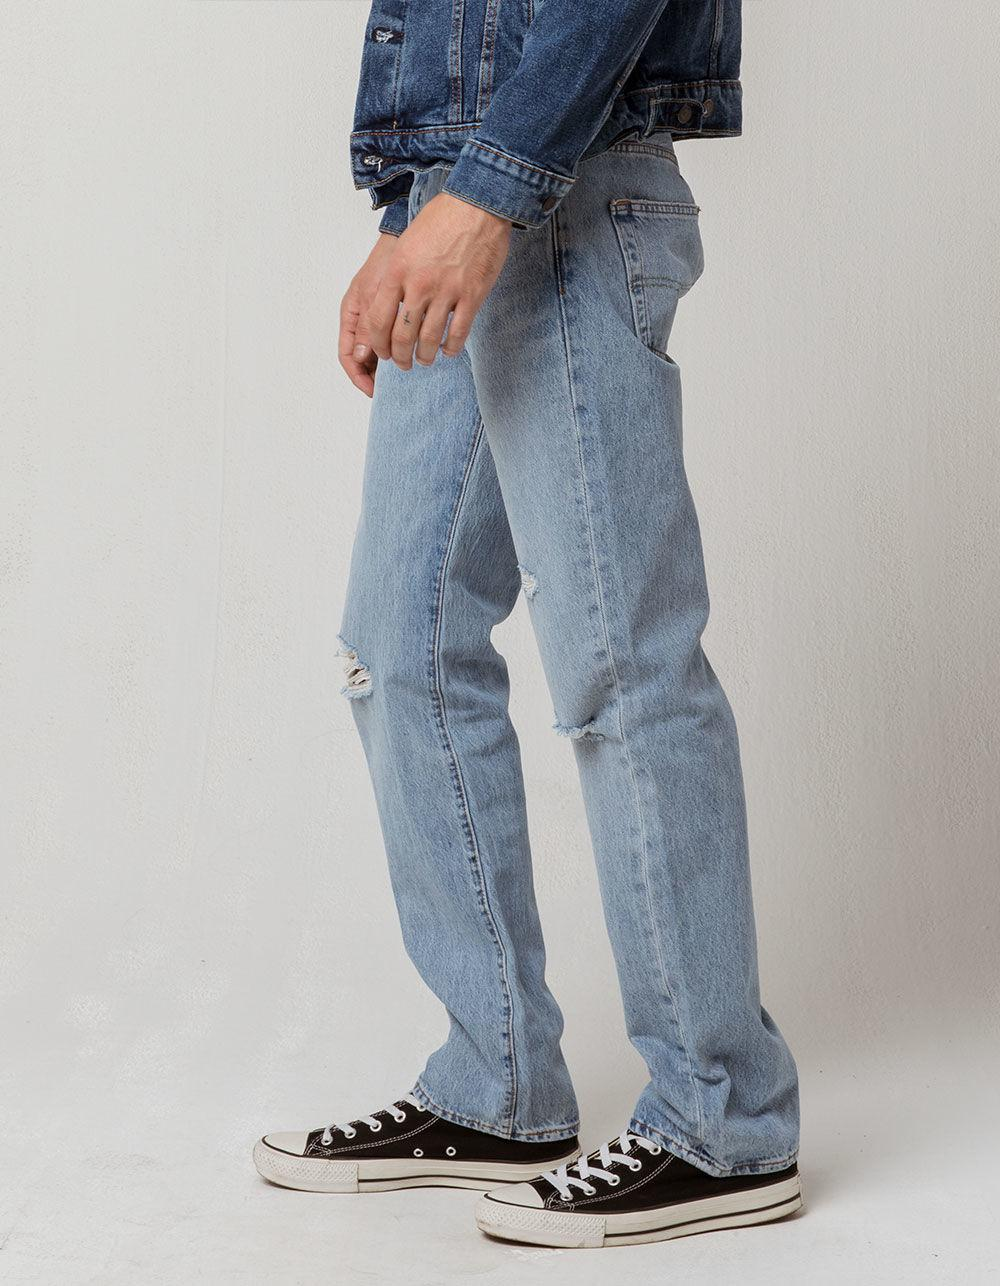 598dbb8ddbd89 Lyst - Levi s 501 Hector War Mens Ripped Jeans in Blue for Men